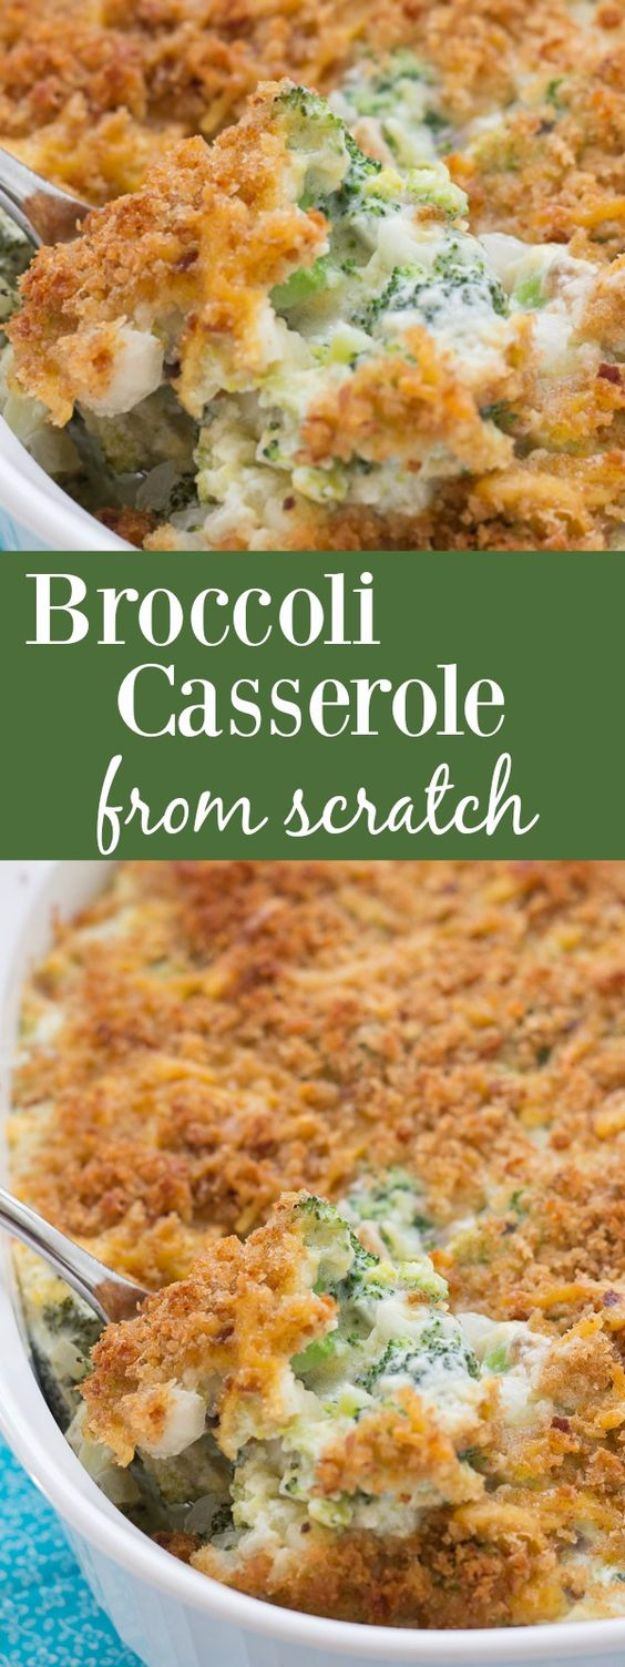 Healthy Thanksgiving Recipes - Broccoli Casserole - Low fat Versions of Your Favorite Holiday Recipe for Turkey, Stuffing, Gravy, Pie and Desserts, Appetizers, Vegetables and Side Dishes like Spinach, Broccoli, Cranberries, Mashed Potatoes, Sweet Potatoes and Green Beans - Easy and Quick Last Minute Thanksgiving Recipes for Low Carb, Low Fat and Clean Eating Diet